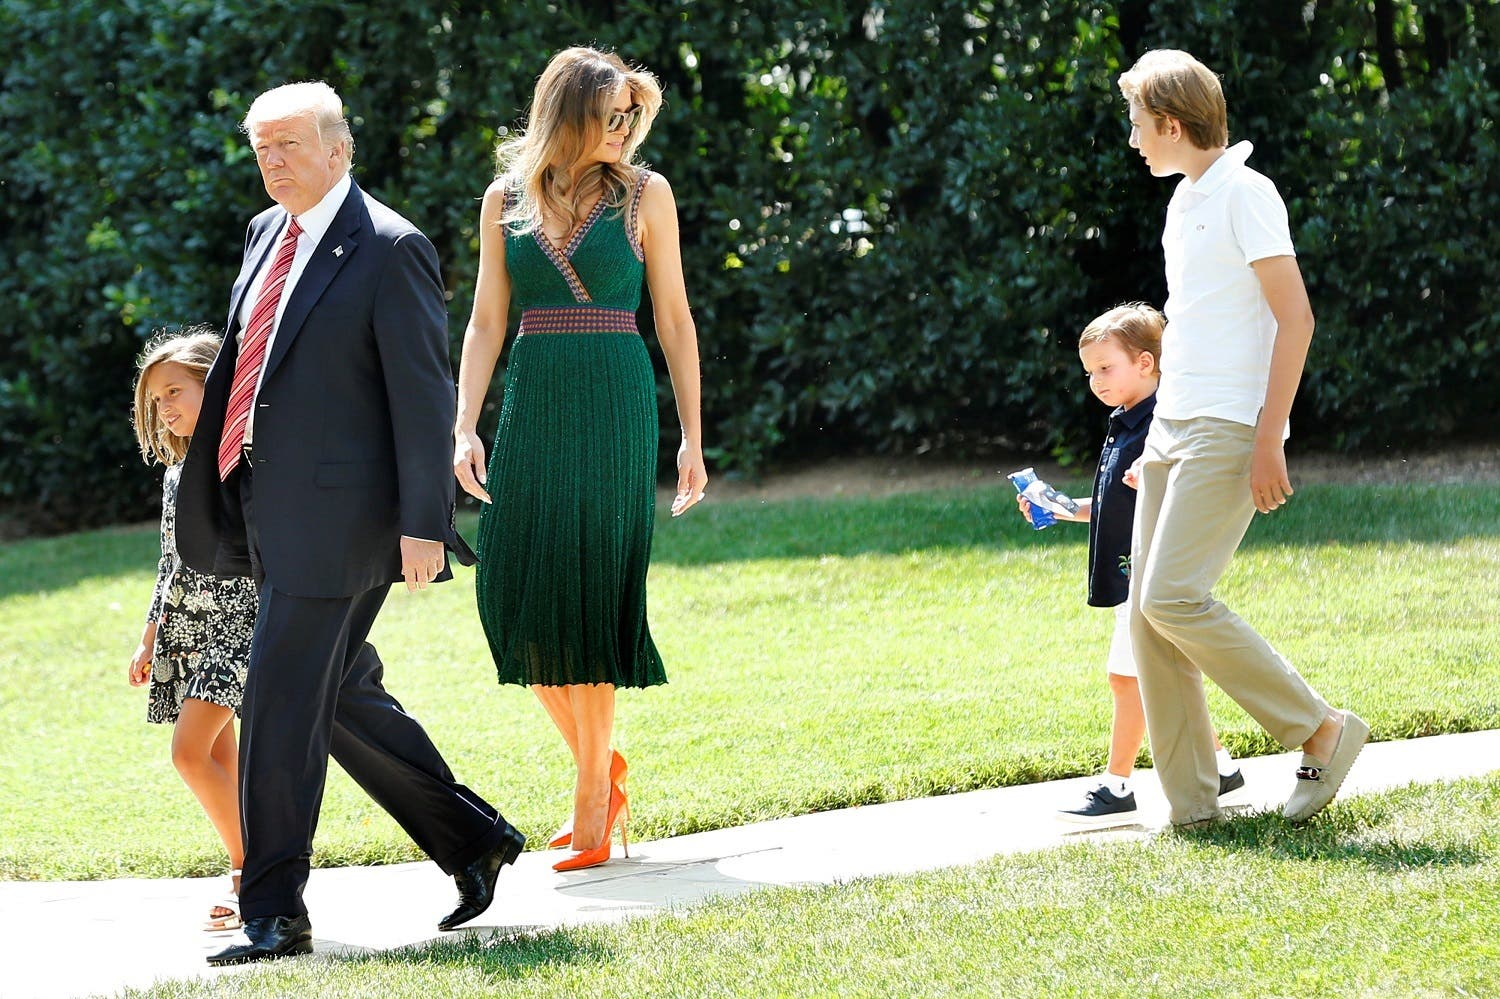 President Donald Trump, First Lady Melania Trump, their son Barron (right) and Trump's grandchildren Arabella and Joseph walk from the Oval Office of the White House in Washington, Ubefore their departure to Camp David, on August 25, 2017. (Reuters)